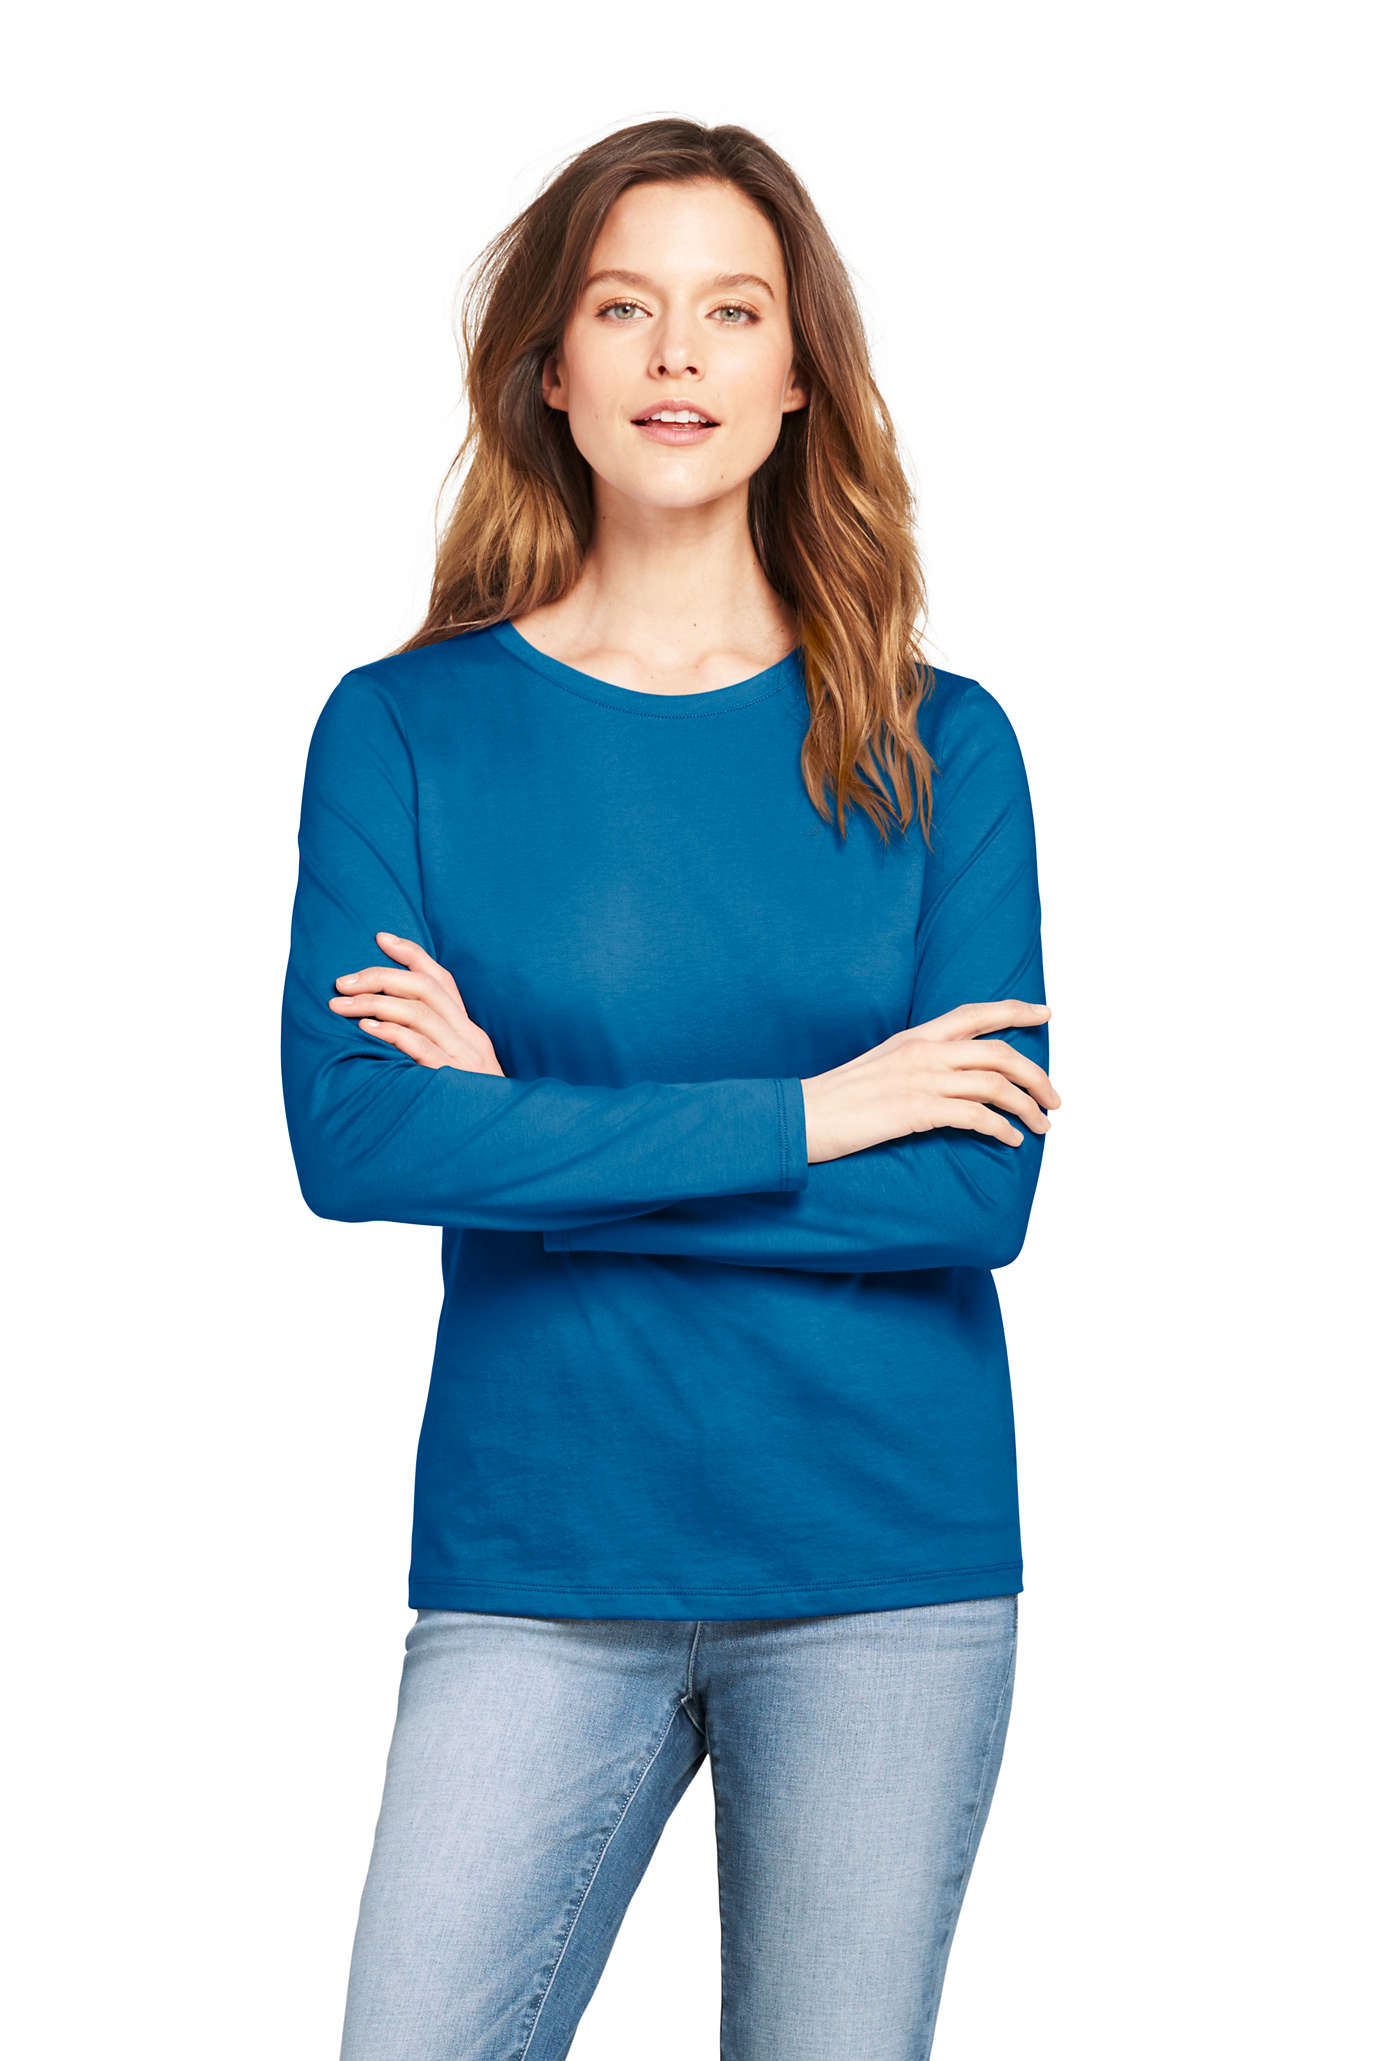 543cb8c96cef Women s Supima Cotton Long Sleeve T-shirt - Relaxed Crewneck